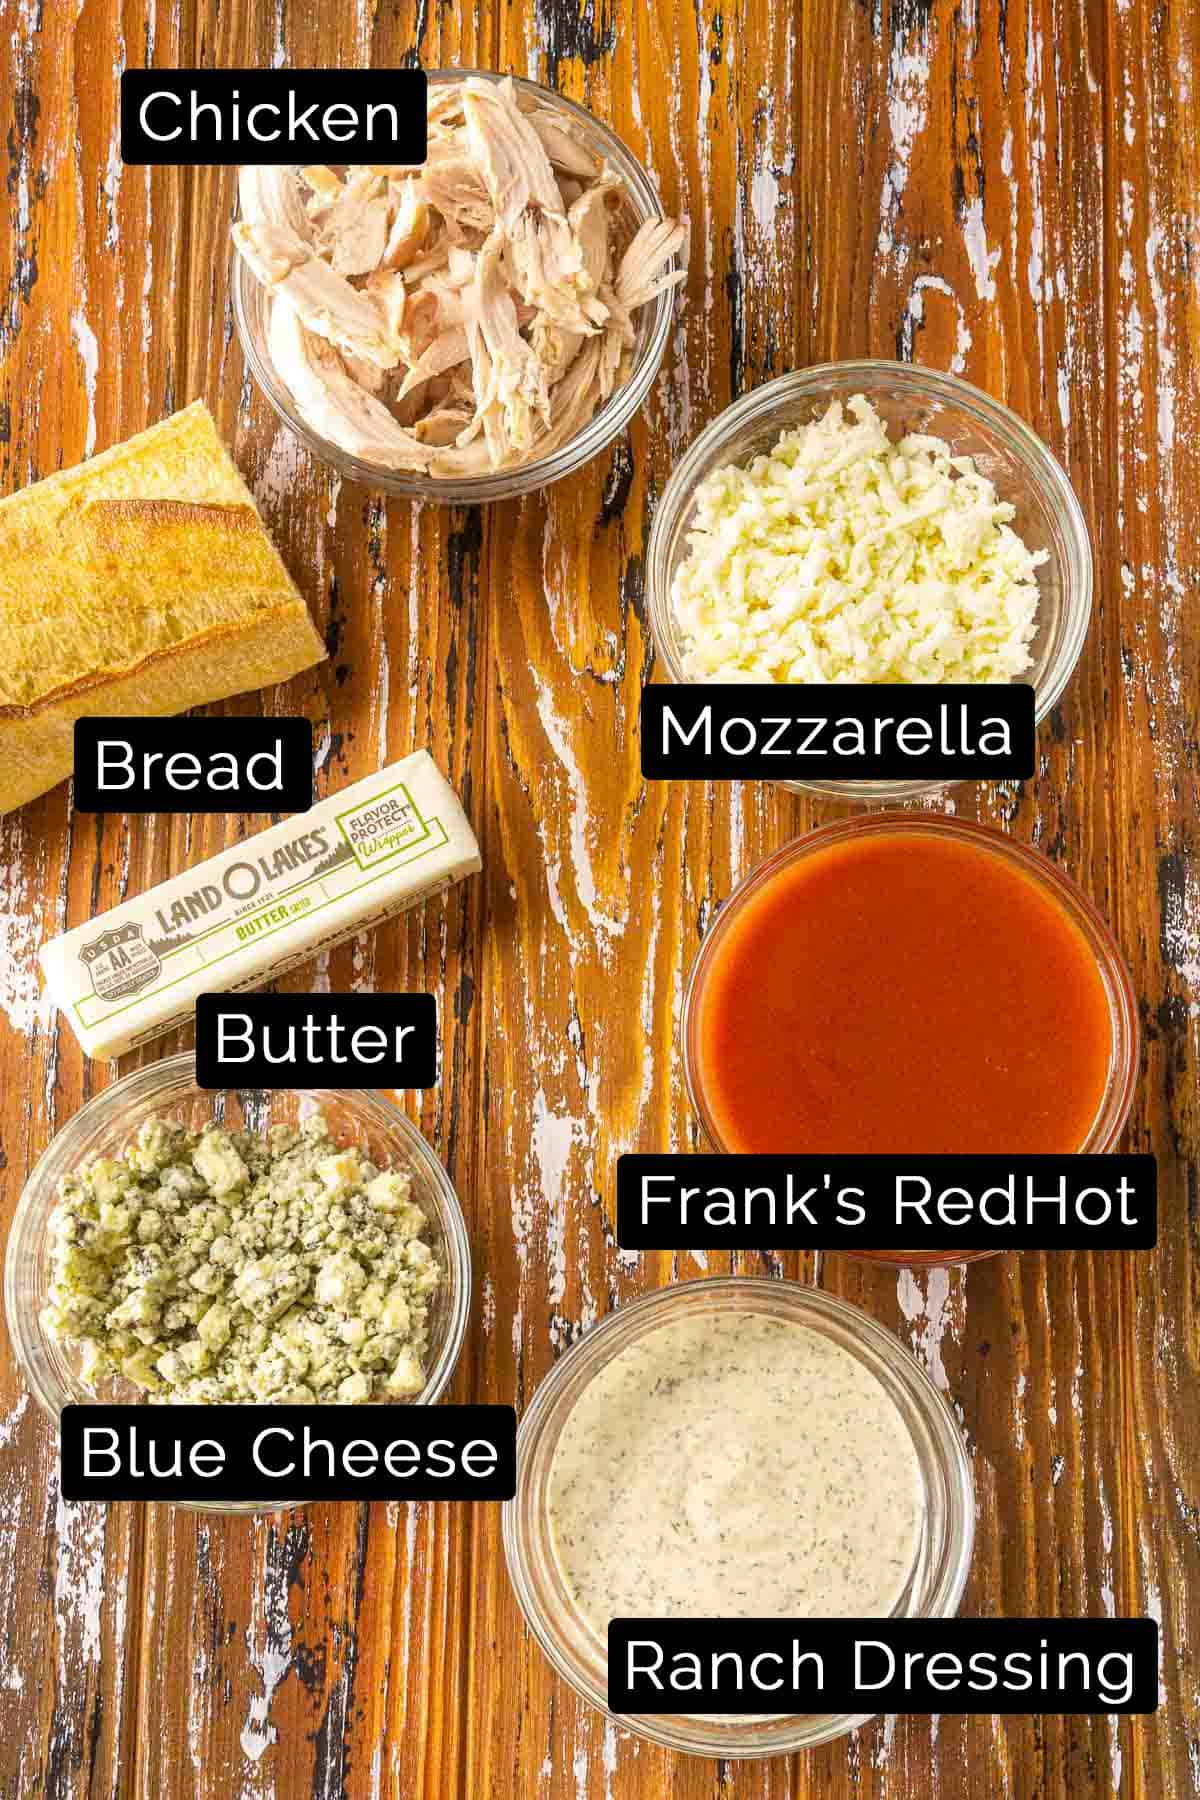 The Buffalo chicken sub ingredients with black and white labels.